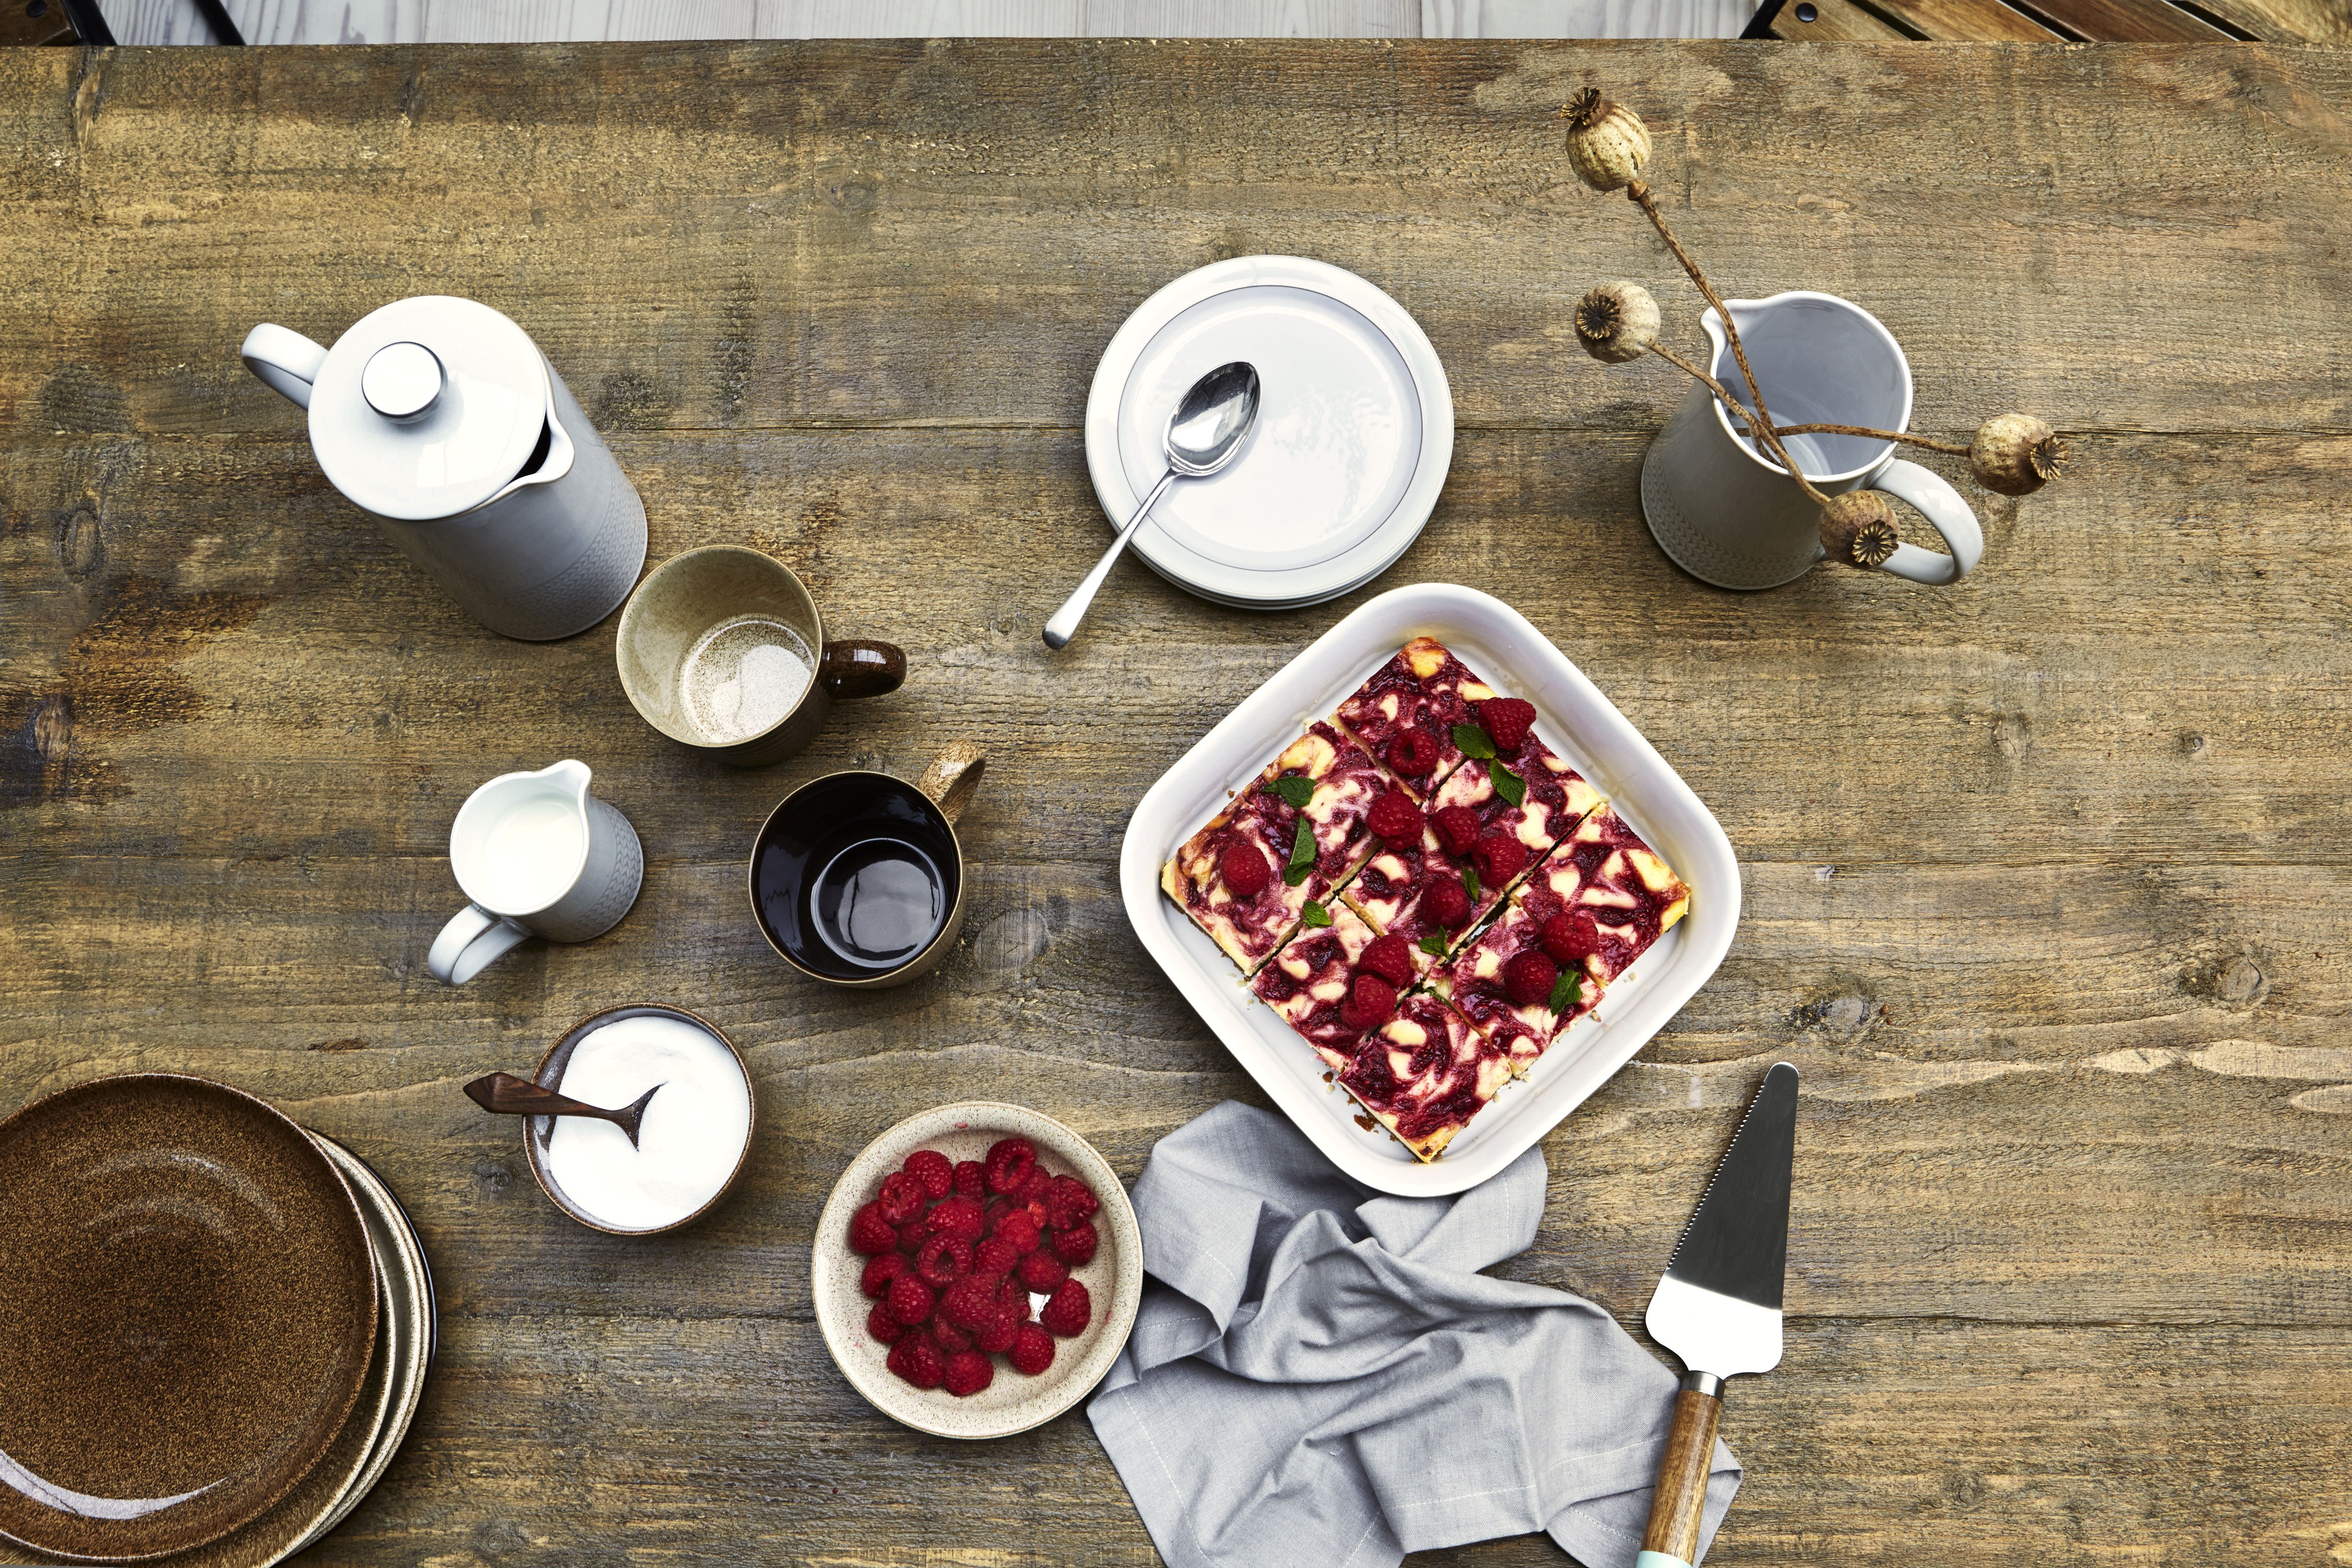 Modern Rustic with Denby